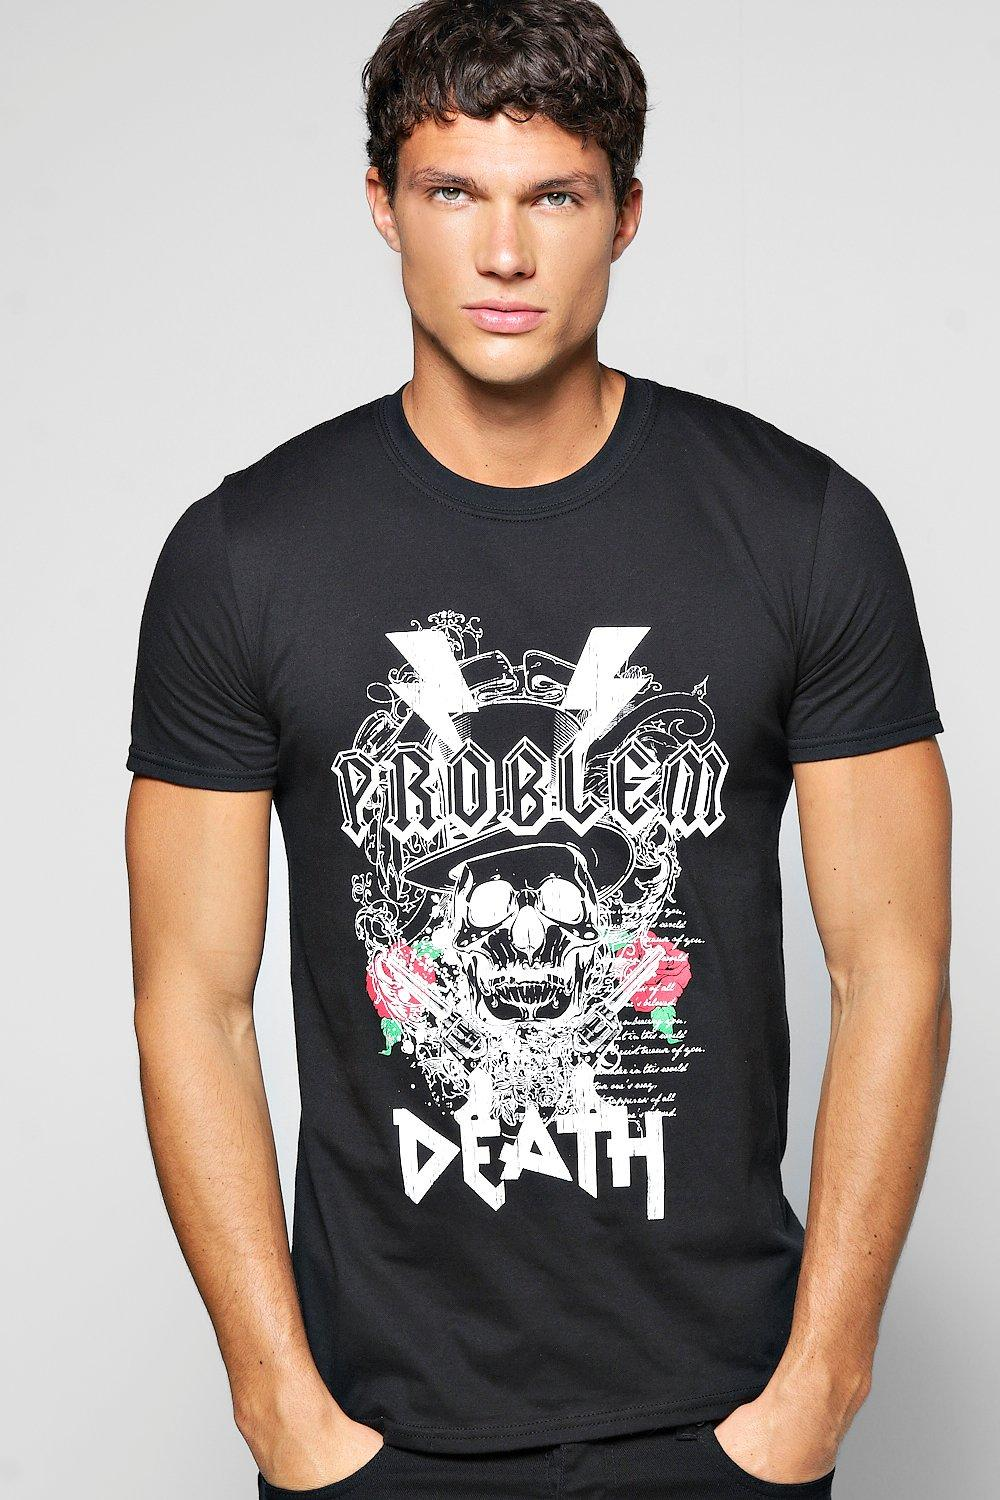 Problem Death Metal T Shirt